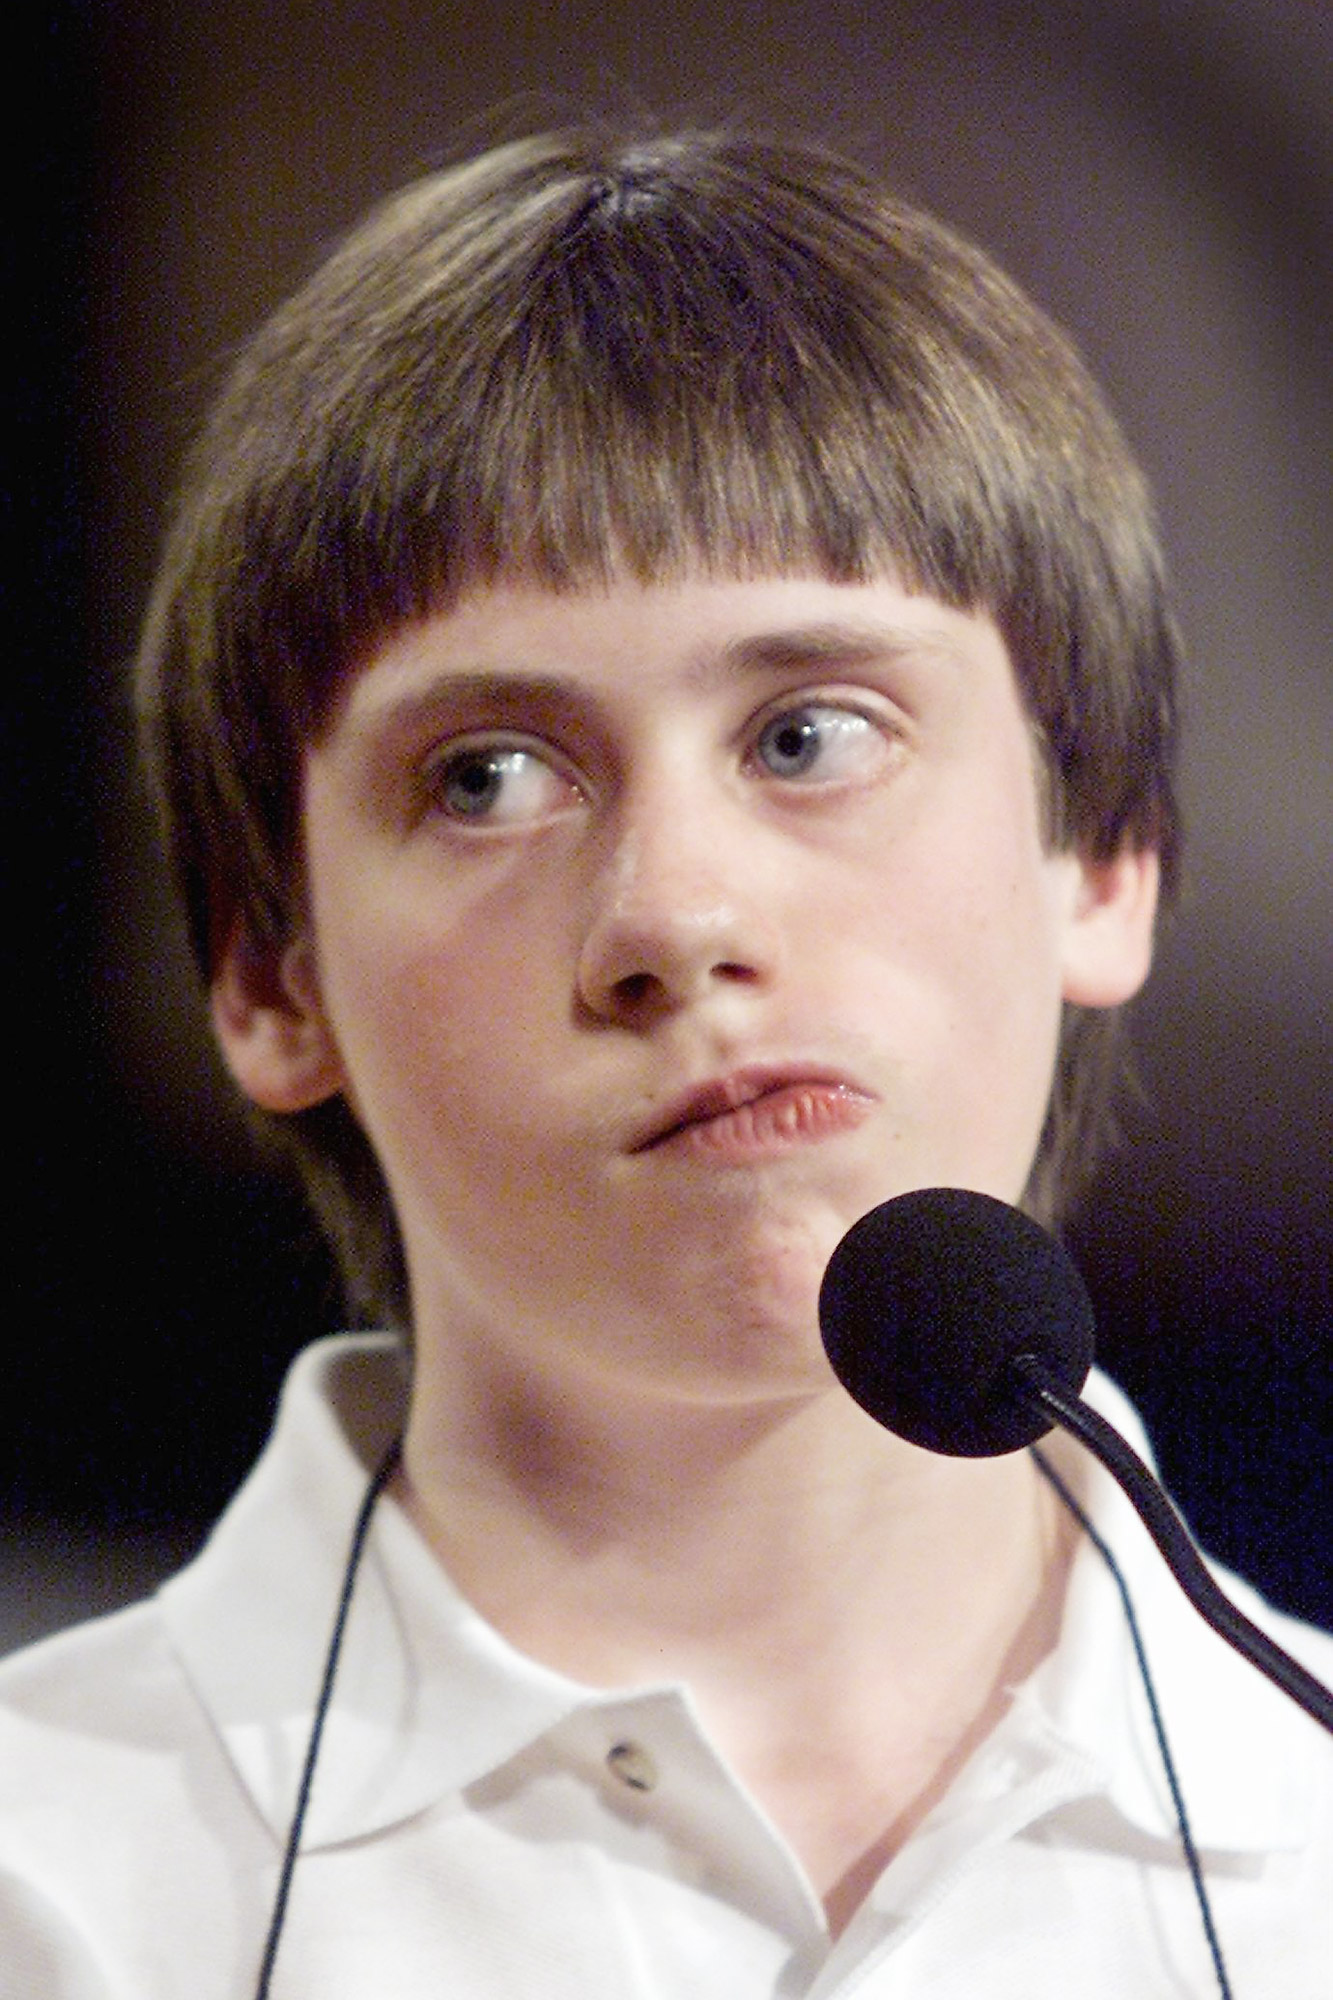 Sean Conley, 12, a seventh grader from the San Francisco, California community of Newark, reacts during the 73rd Annual Scripps Howard National Spelling Bee at the Grand Hyatt Hotel in Washington, DC, 01 June 2000